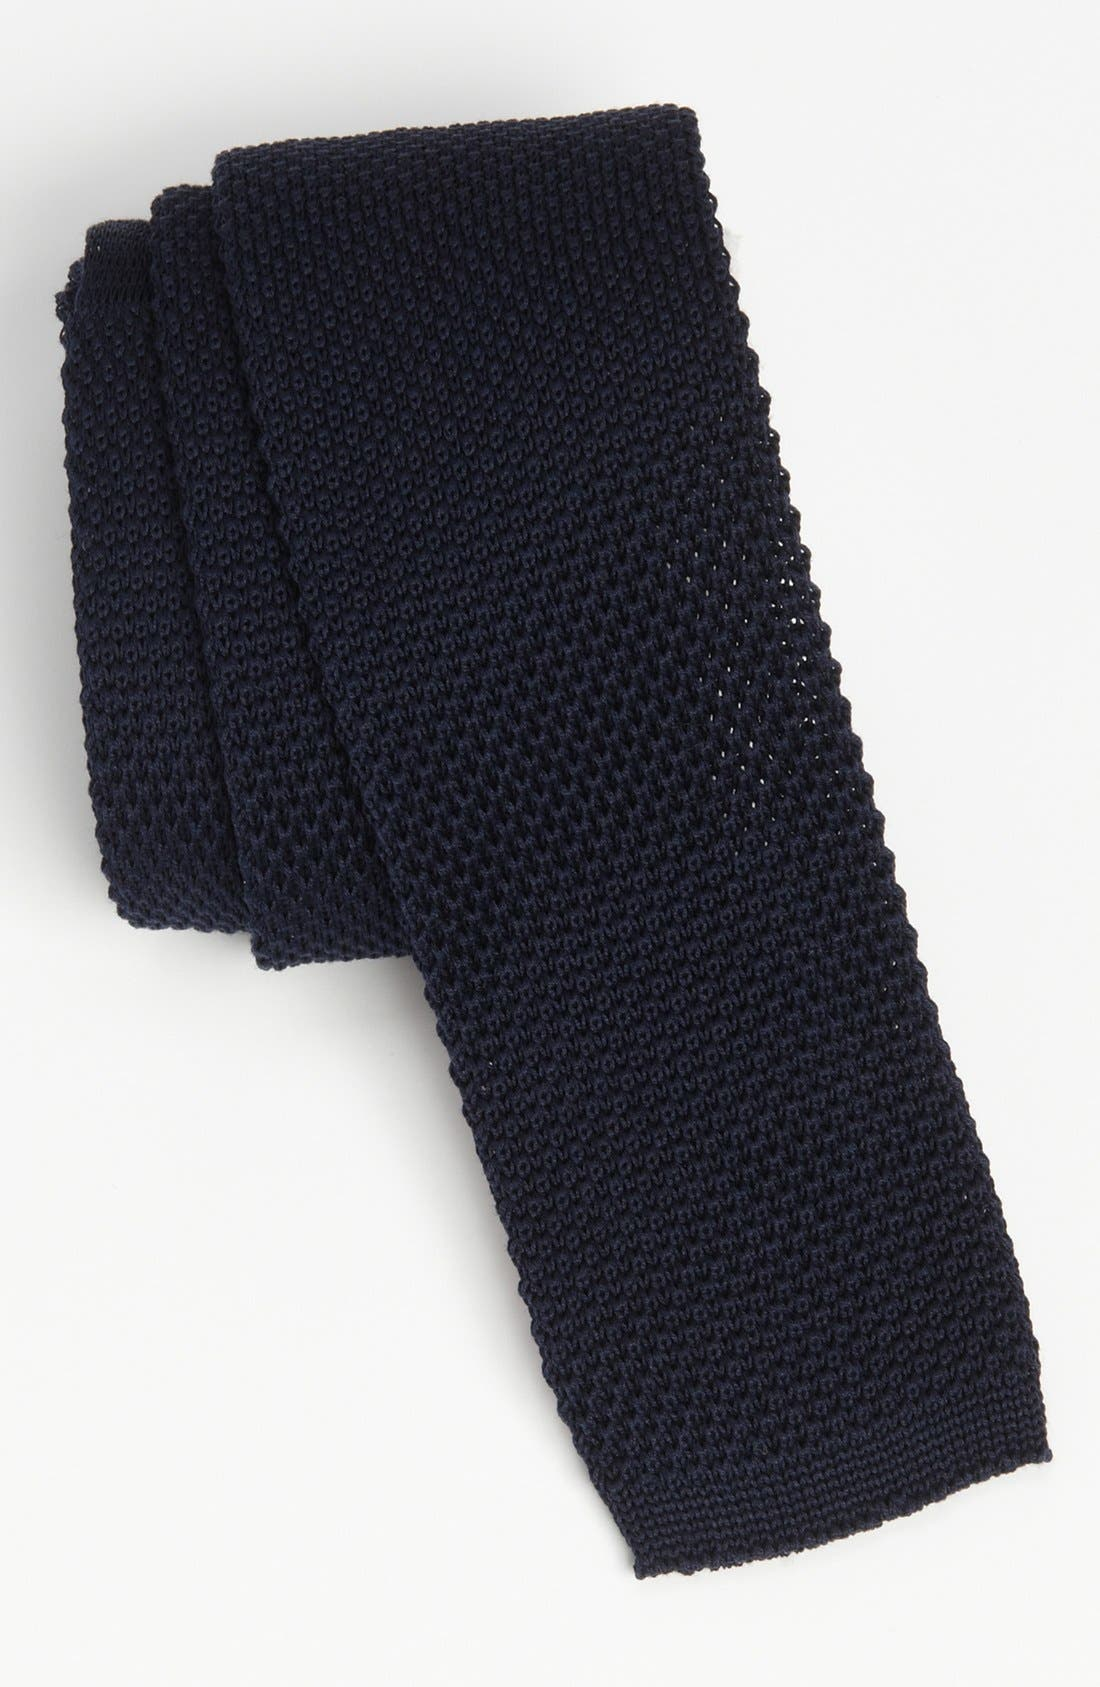 Alternate Image 1 Selected - BOSS HUGO BOSS Knit Tie